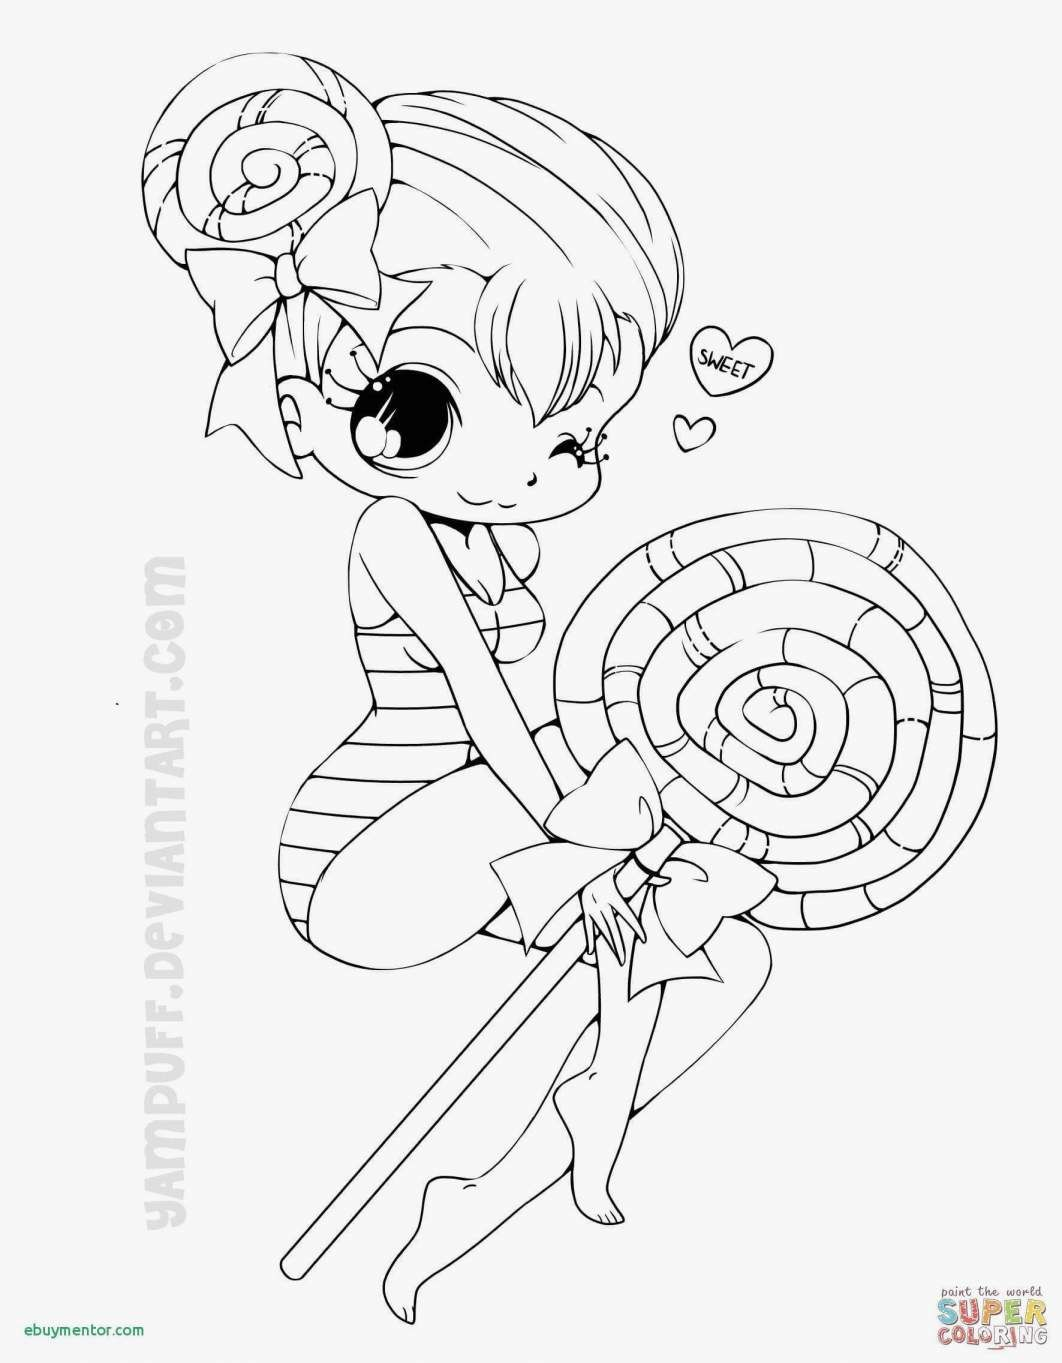 Free Printable Christmas Coloring Pages And Crafts 20 Fresh Chibi Anime Coloring Pages Chibi Coloring Pages Coloring Pages Inspirational Cute Coloring Pages